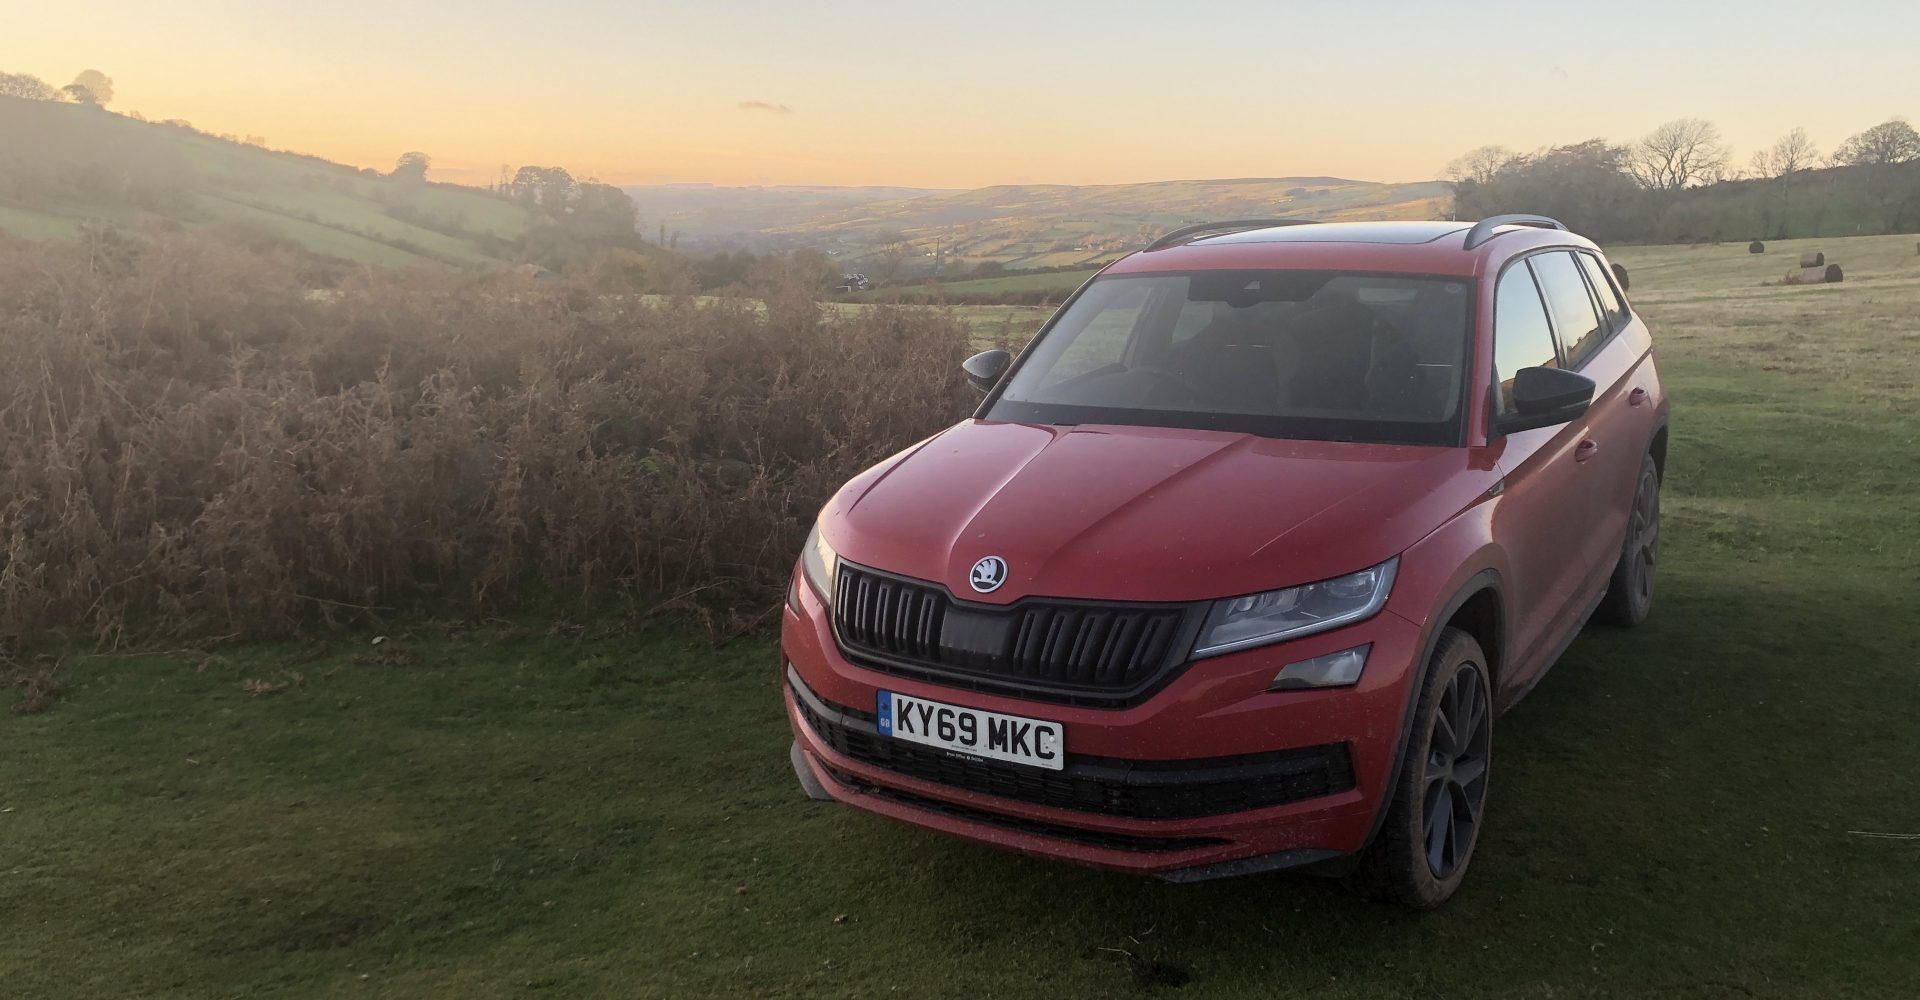 Long-term report: The Skoda Kodiaq shows how clever it really is